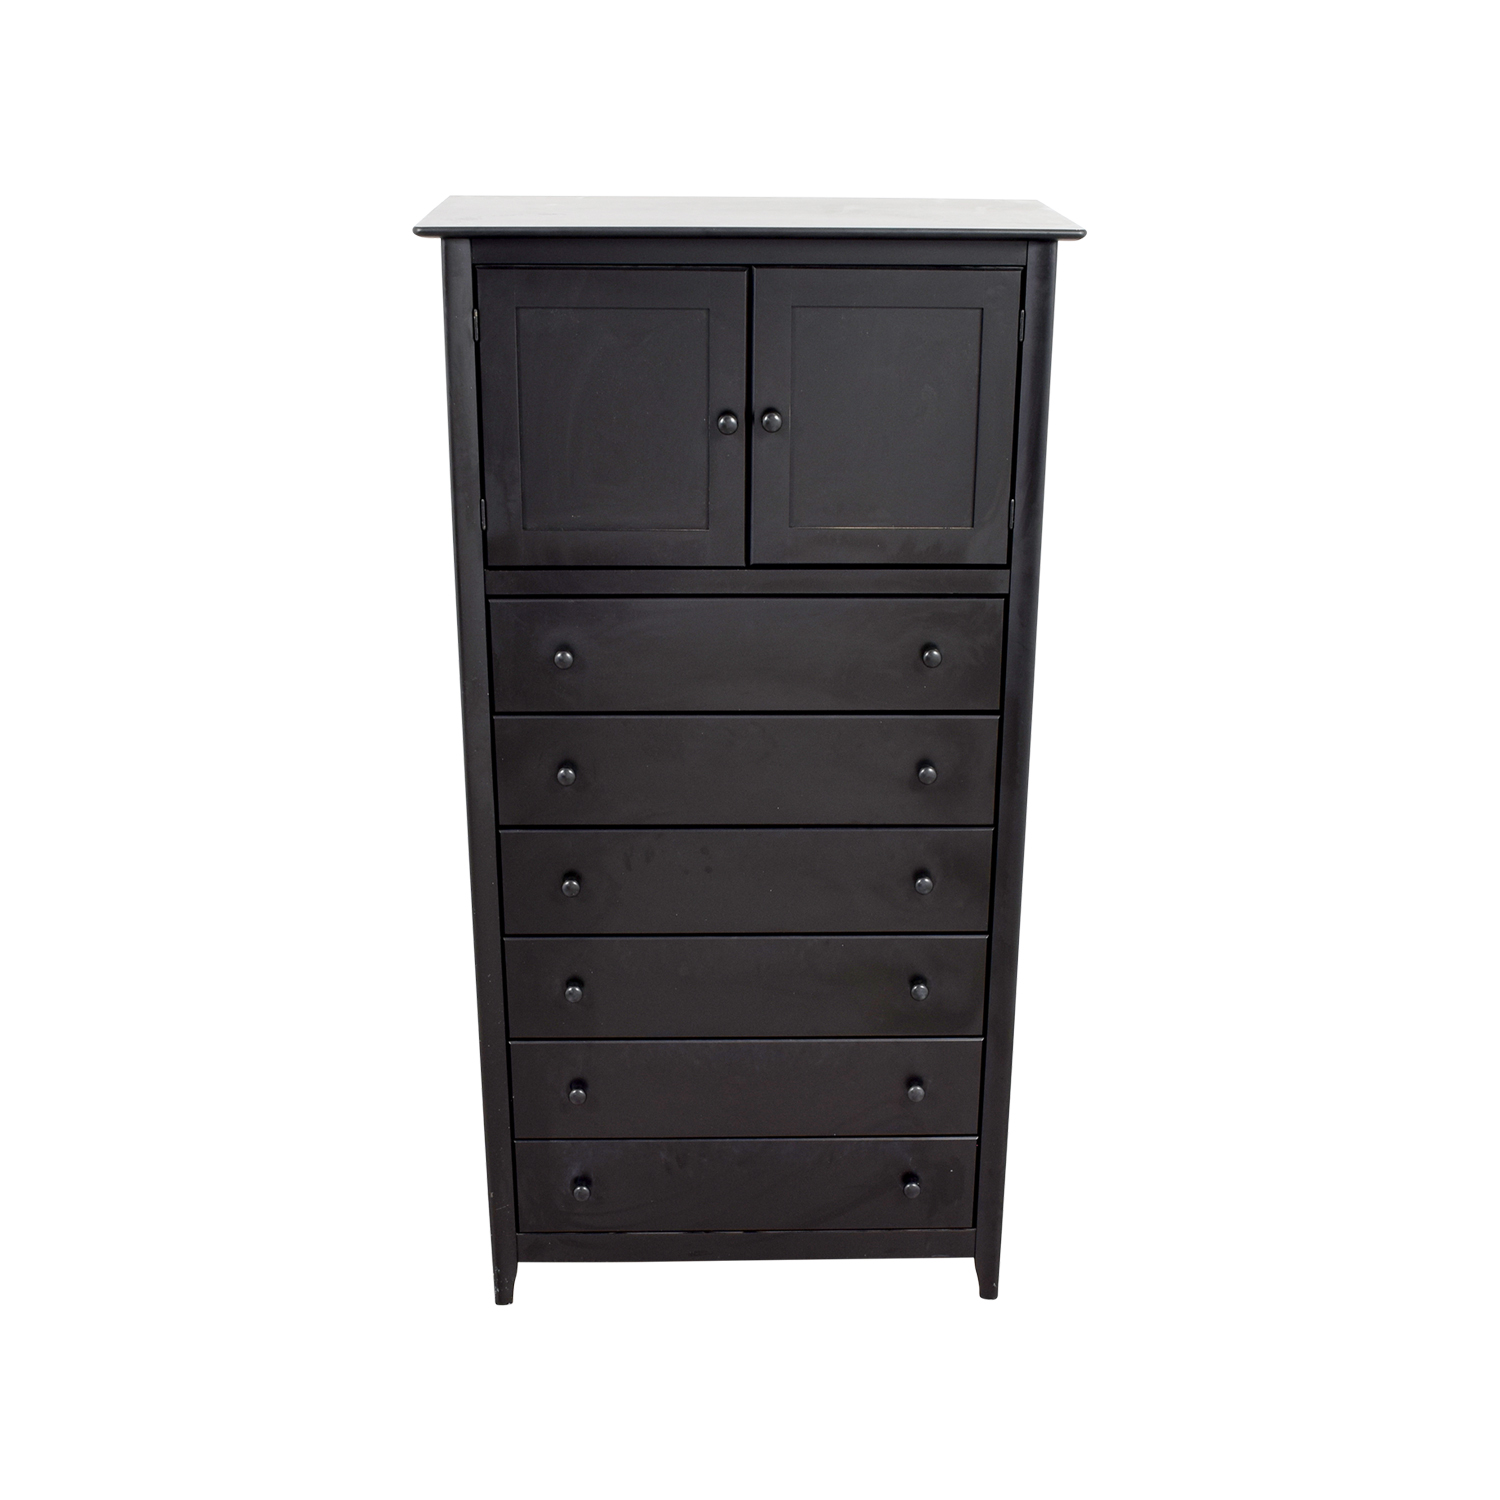 Atlantic Atlantic Black Tall Boy Six-Drawer Dresser price